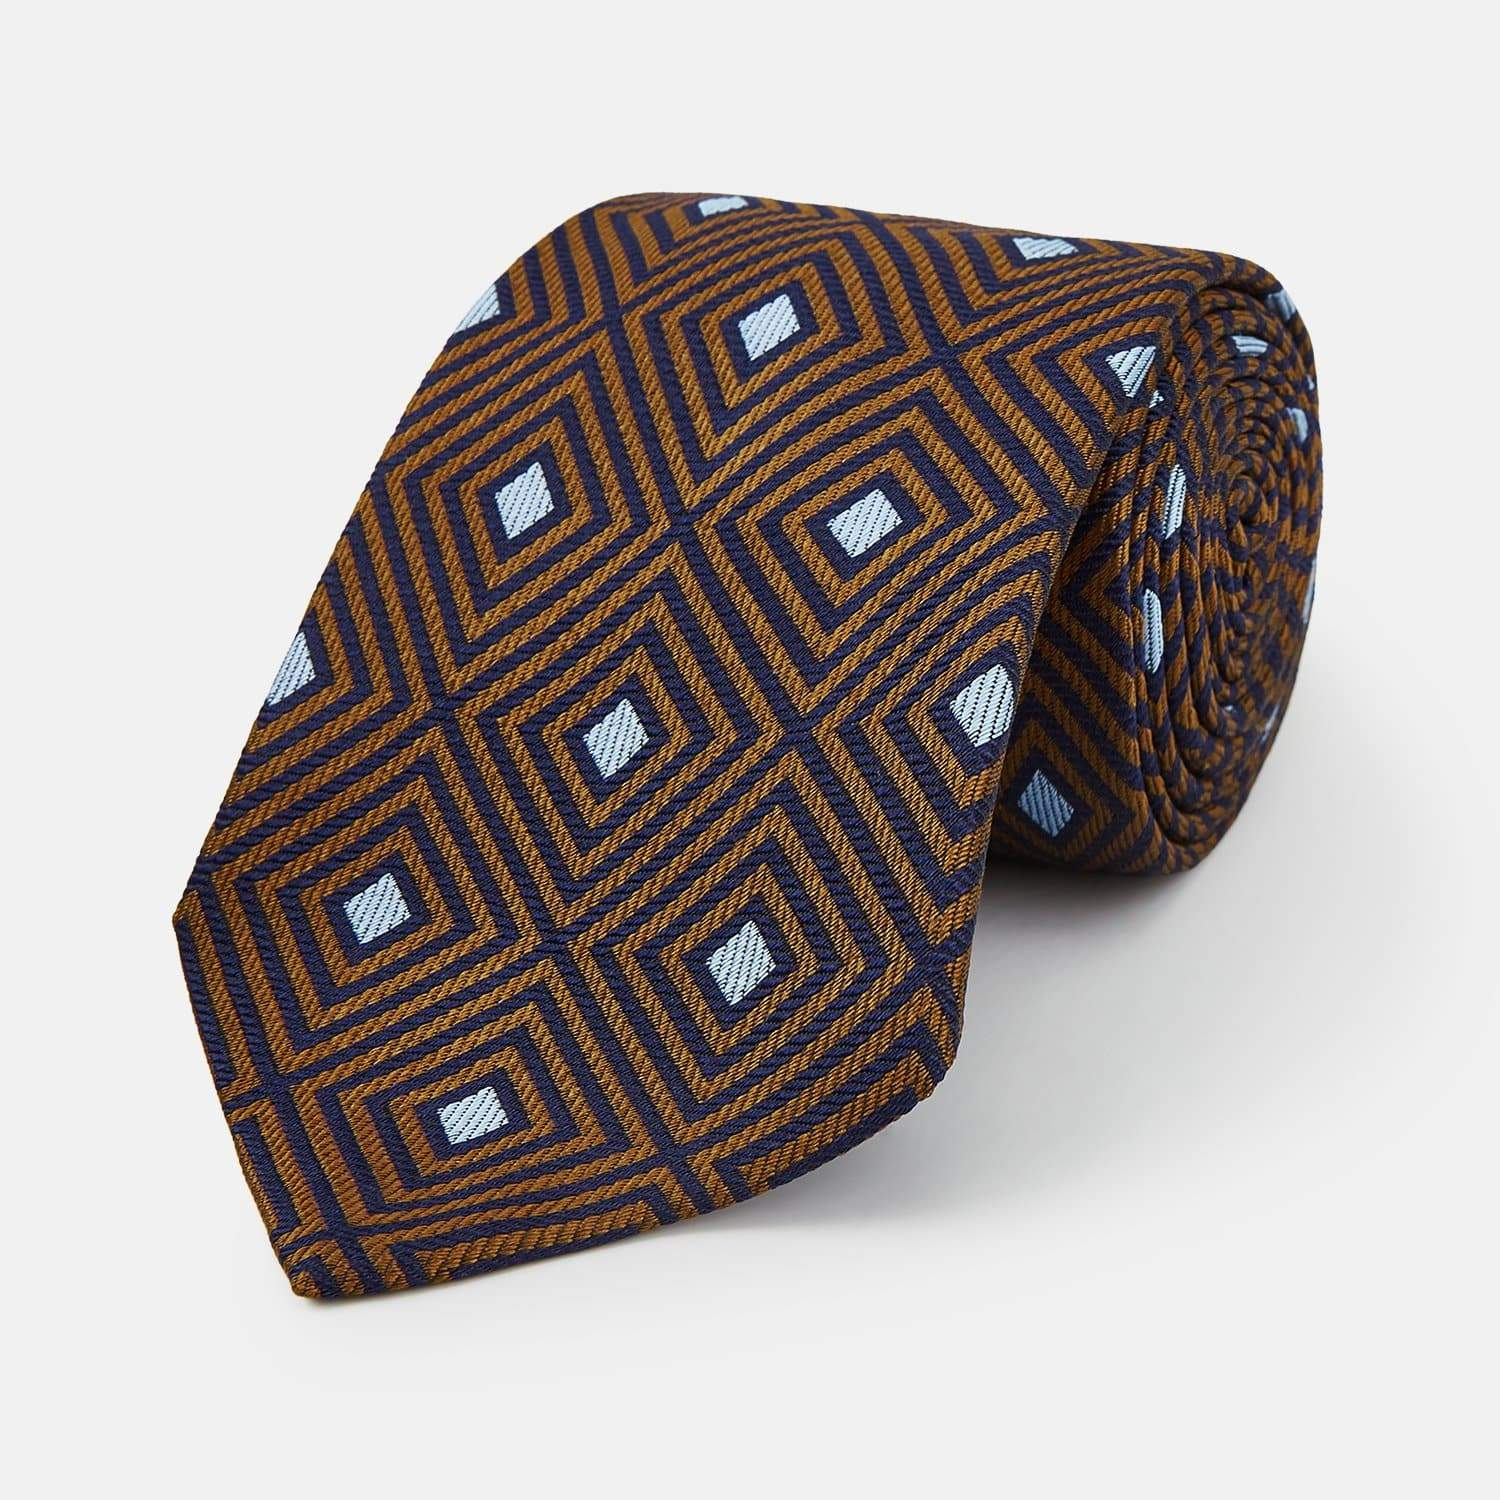 Squares Silk Tie - Tomorrow Never Dies Edition - By Turnbull & Asser